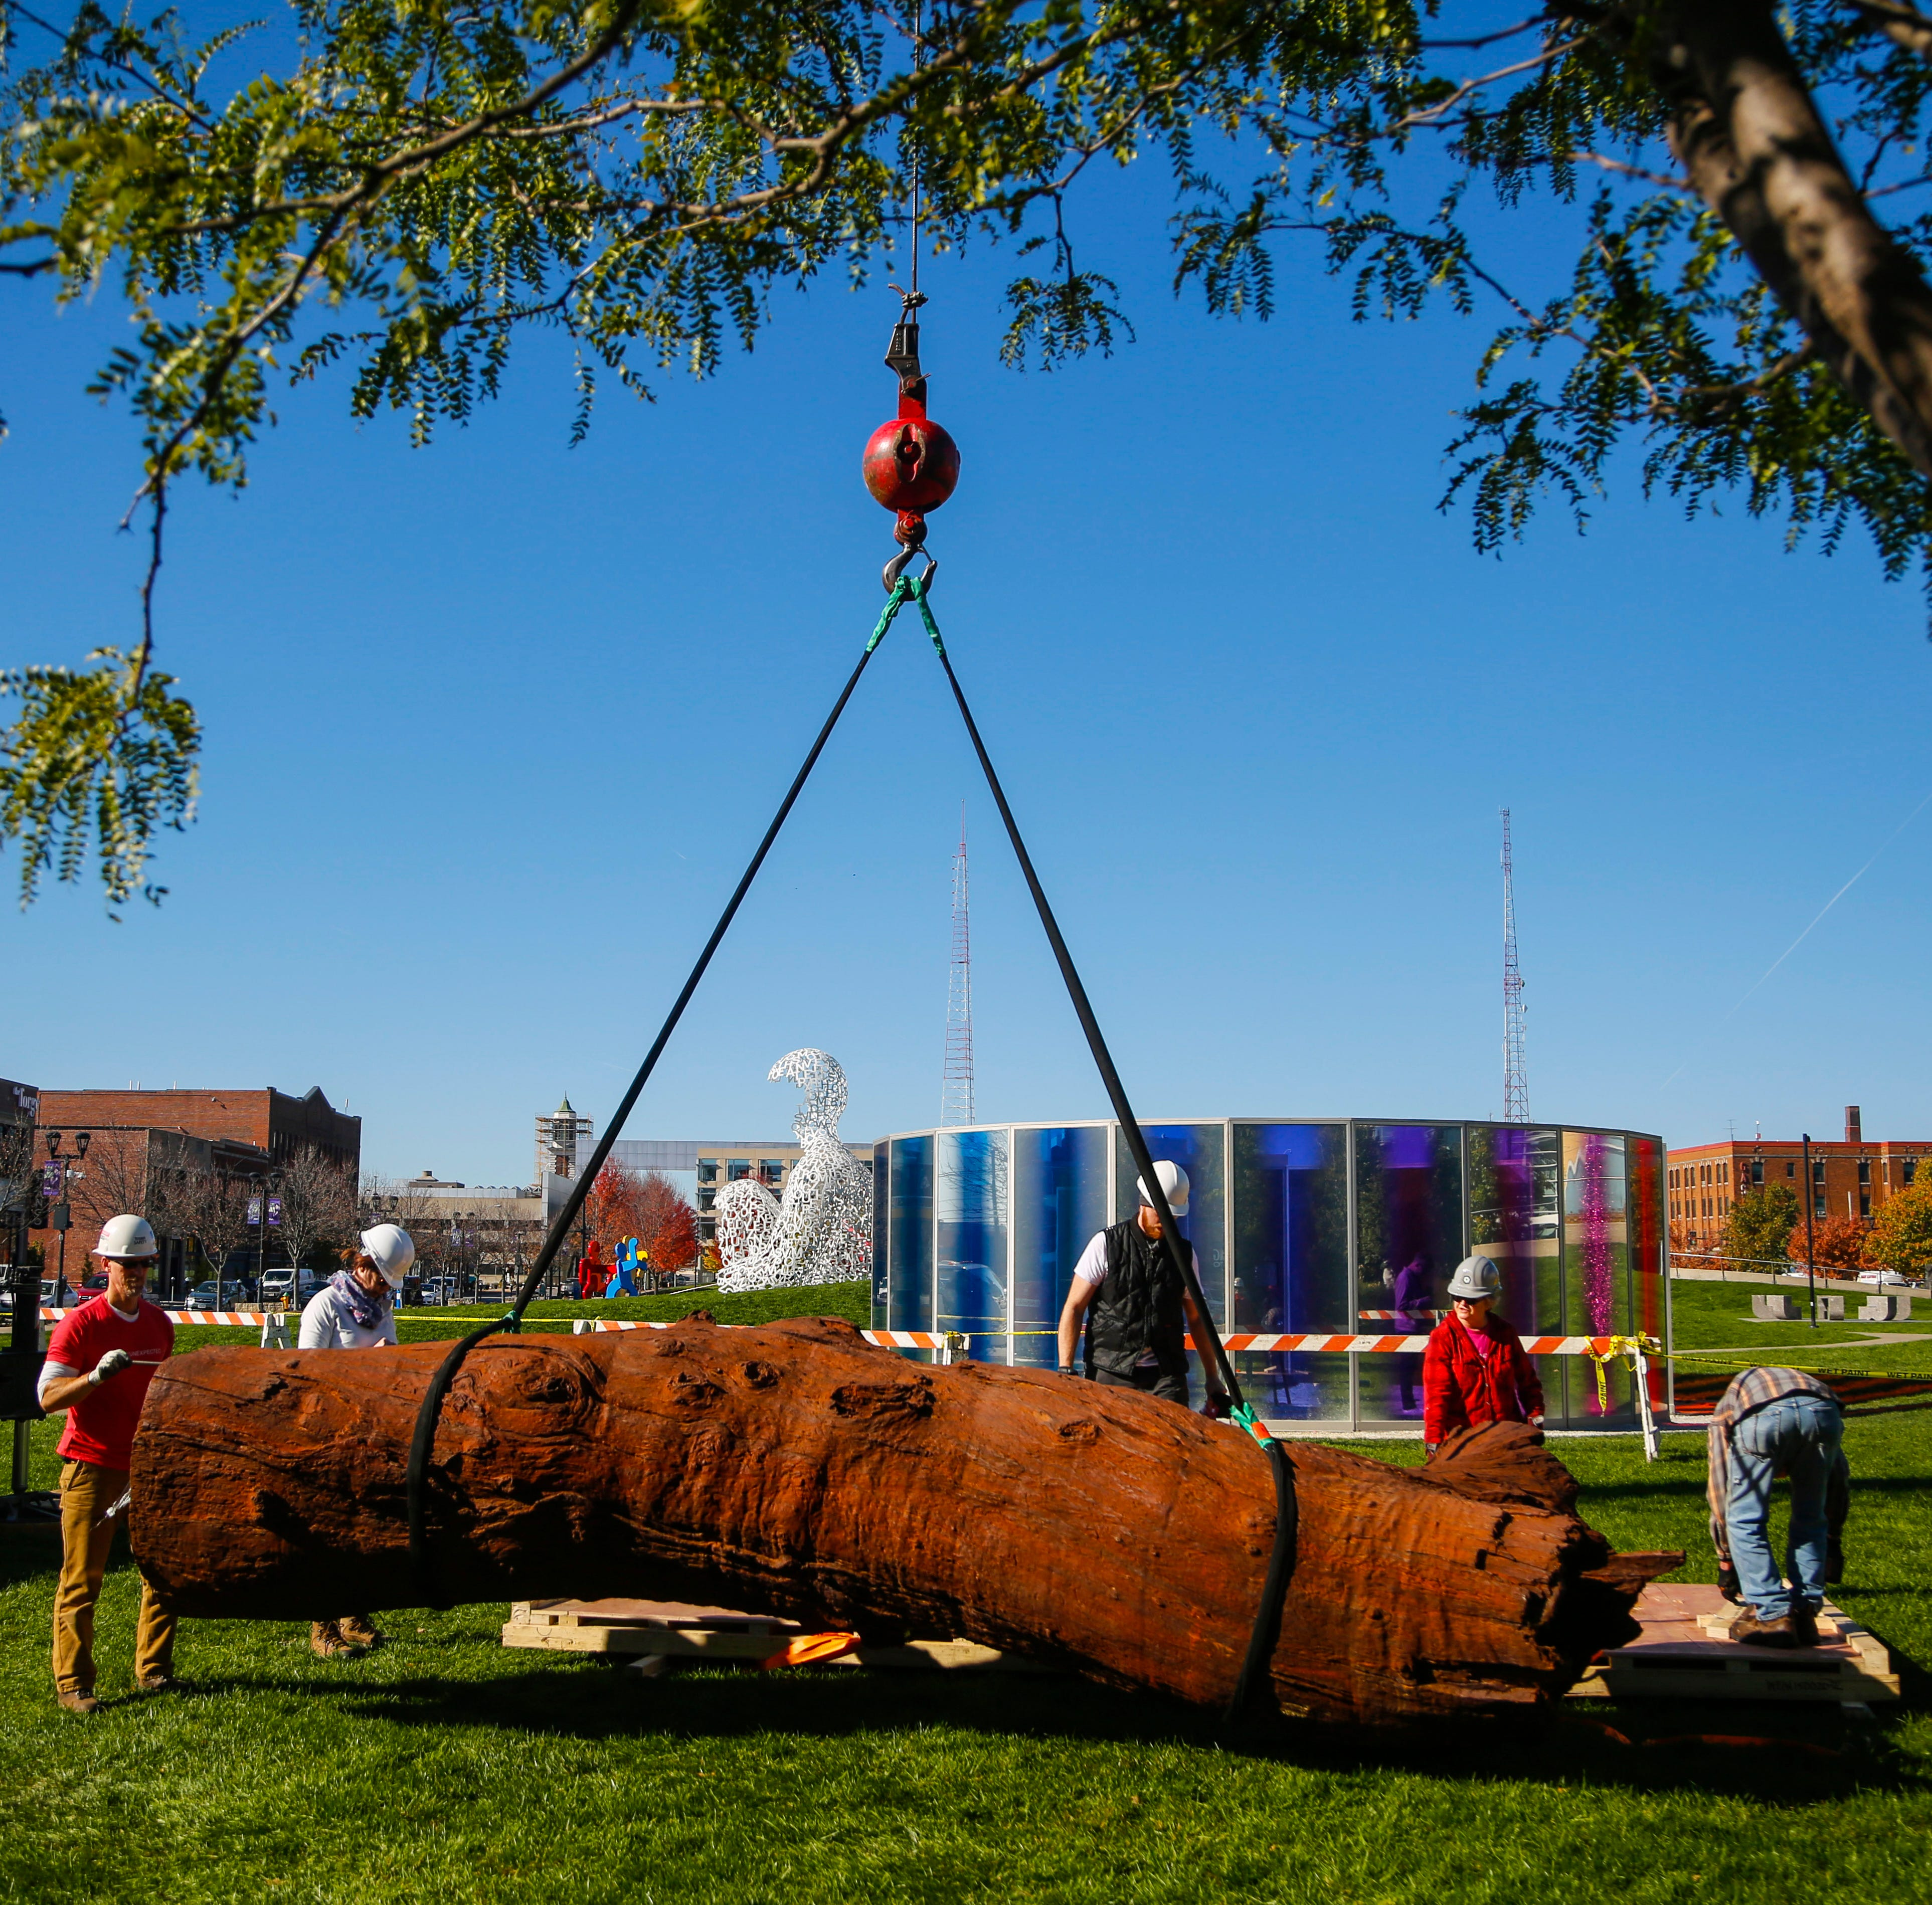 There's been a 3,000-pound addition to the Pappajohn Sculpture Park